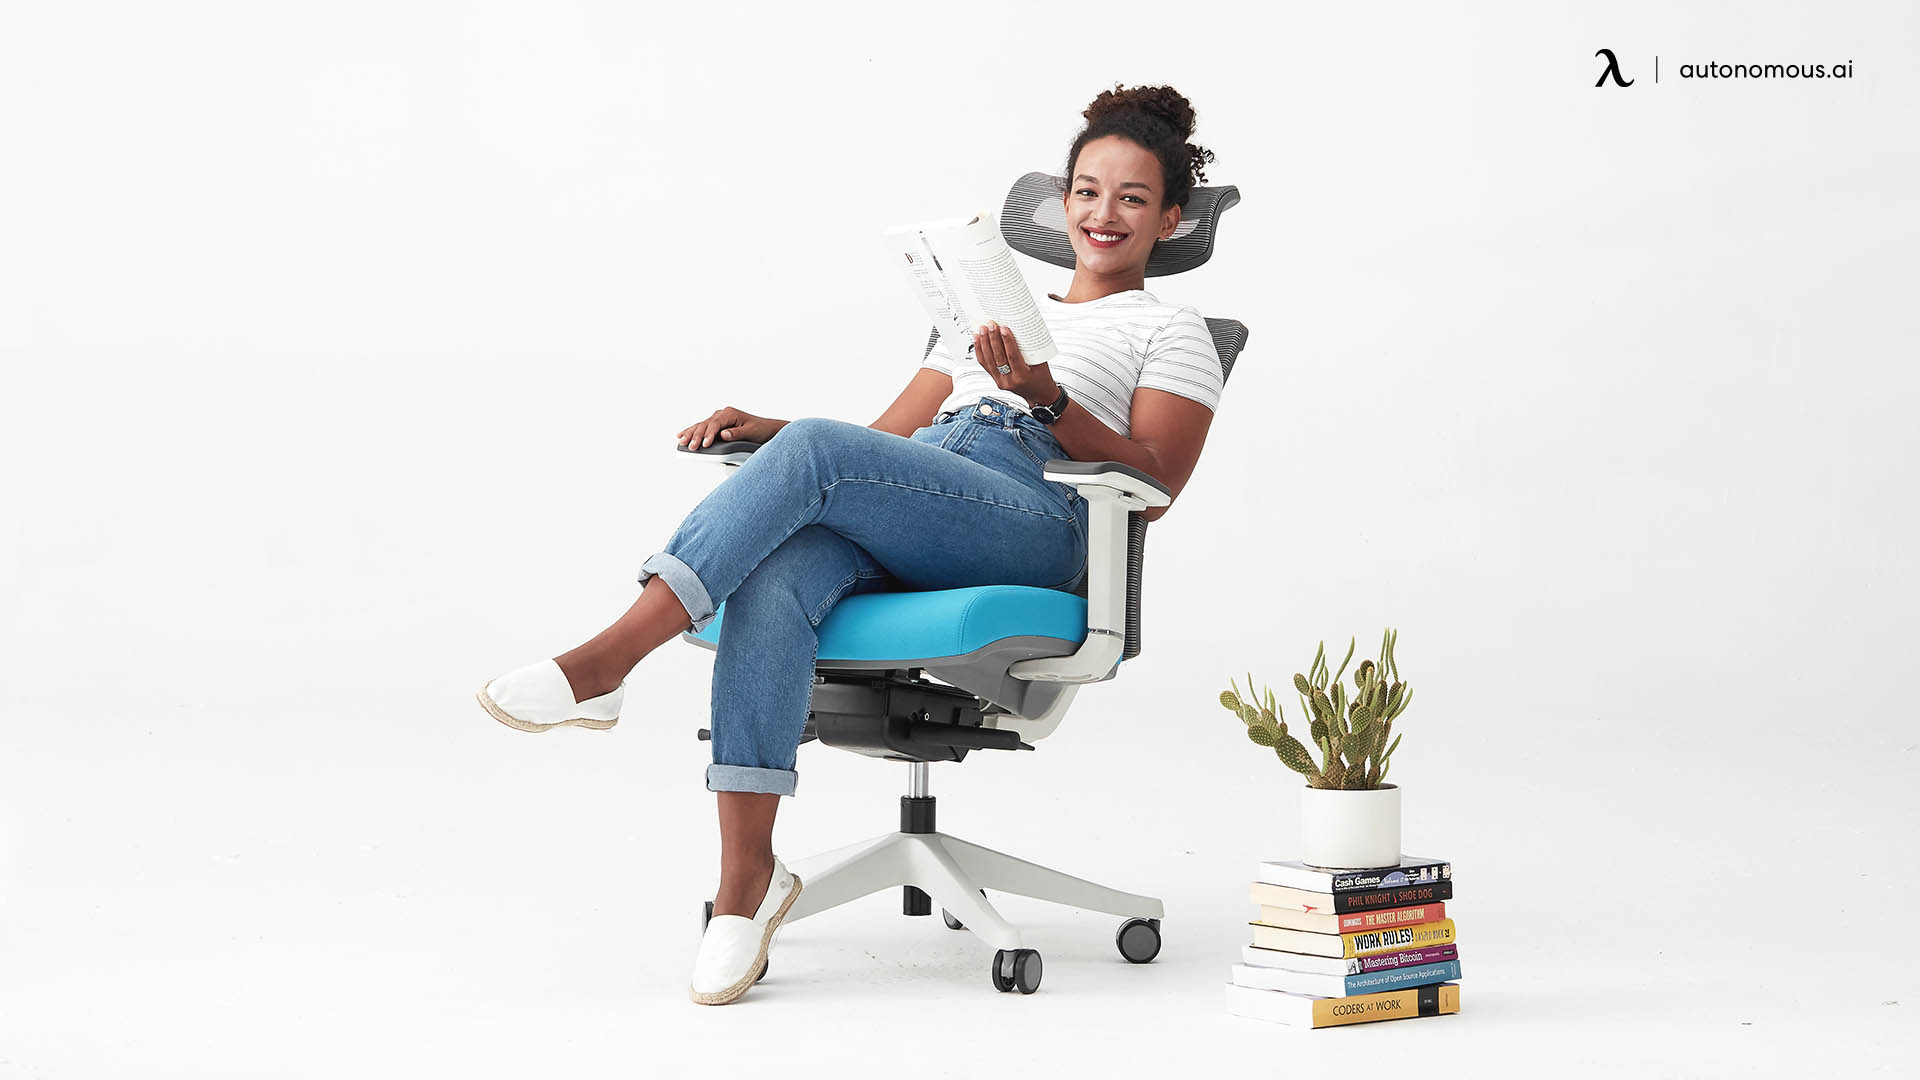 How Much Does the ErgoChair 2 Cost?